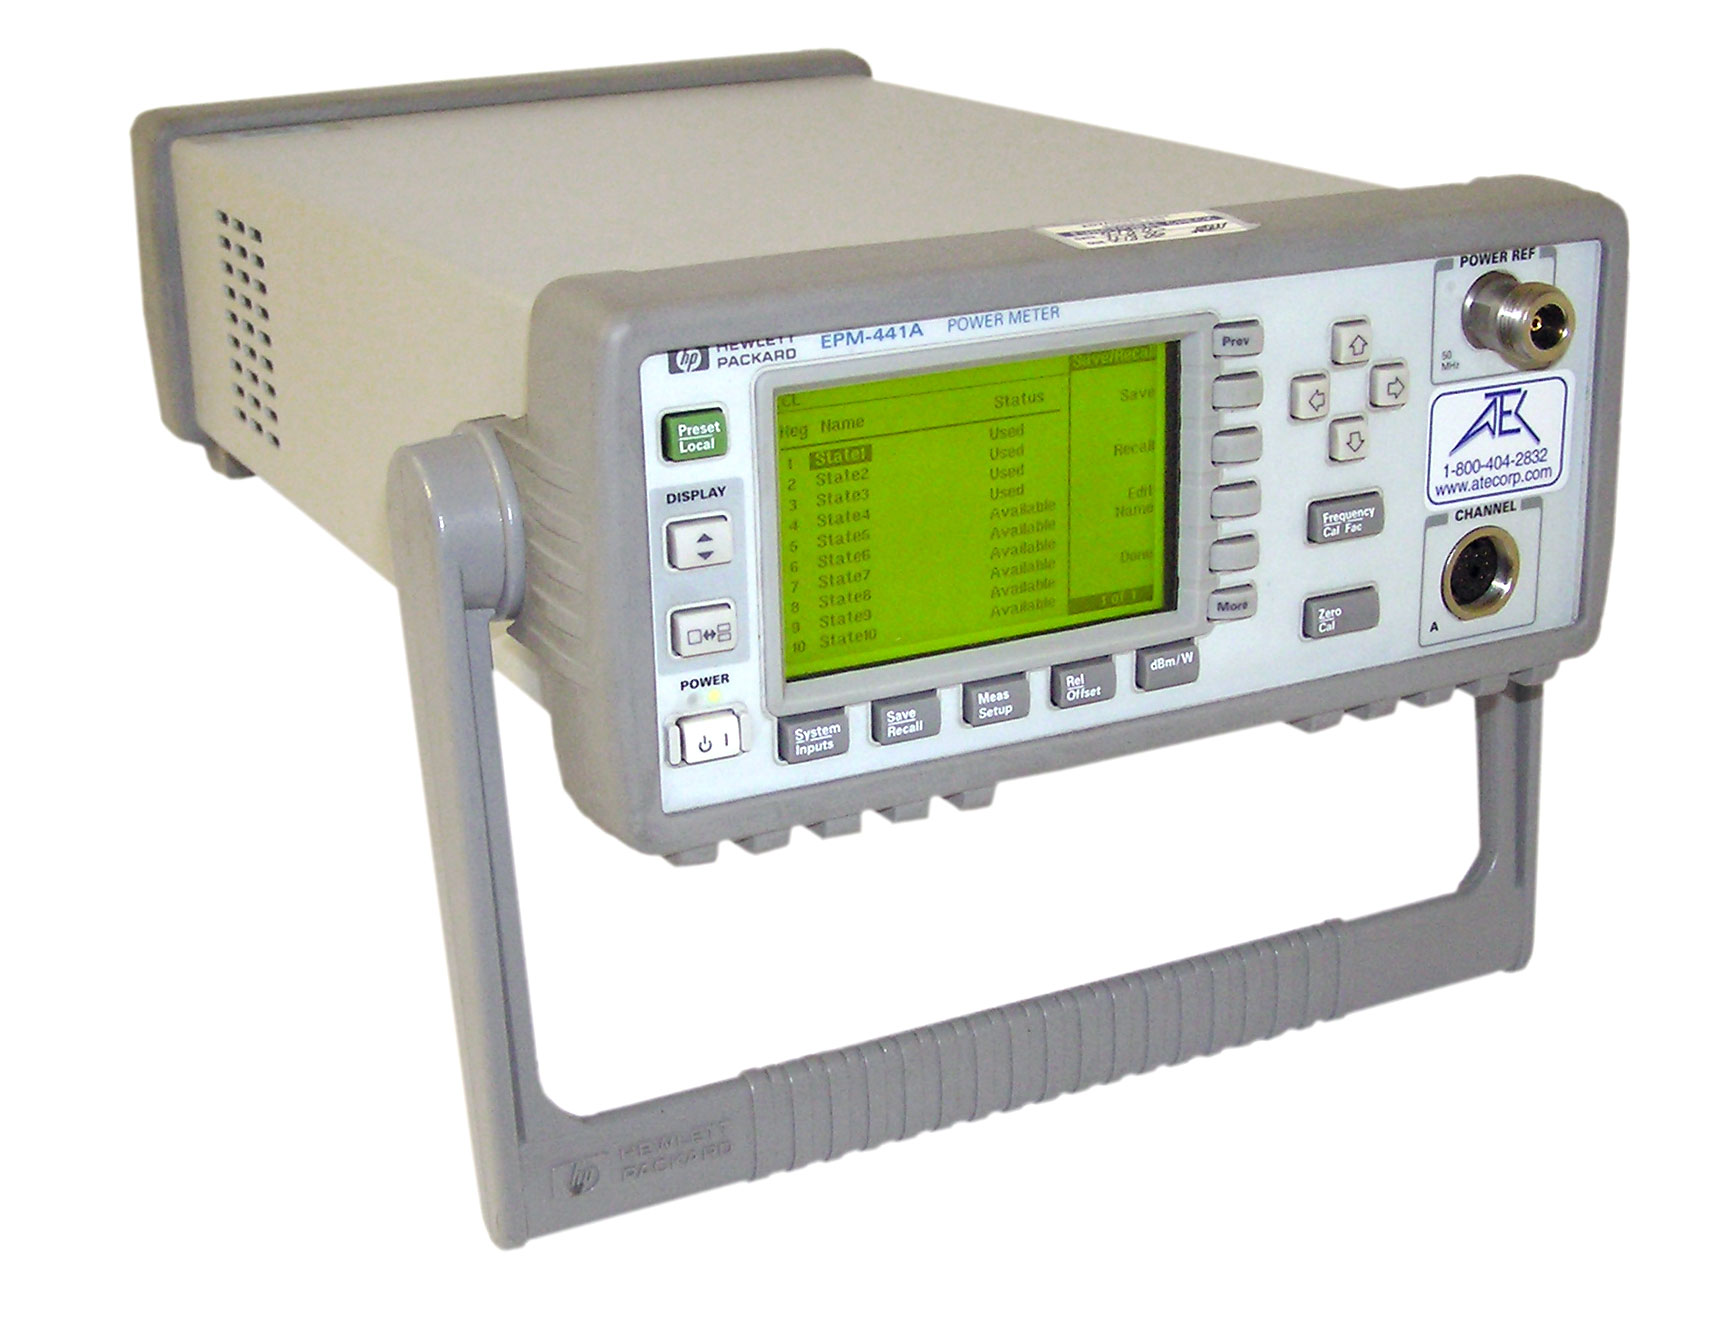 Keysight EPM-441A Single- Channel Power Meter